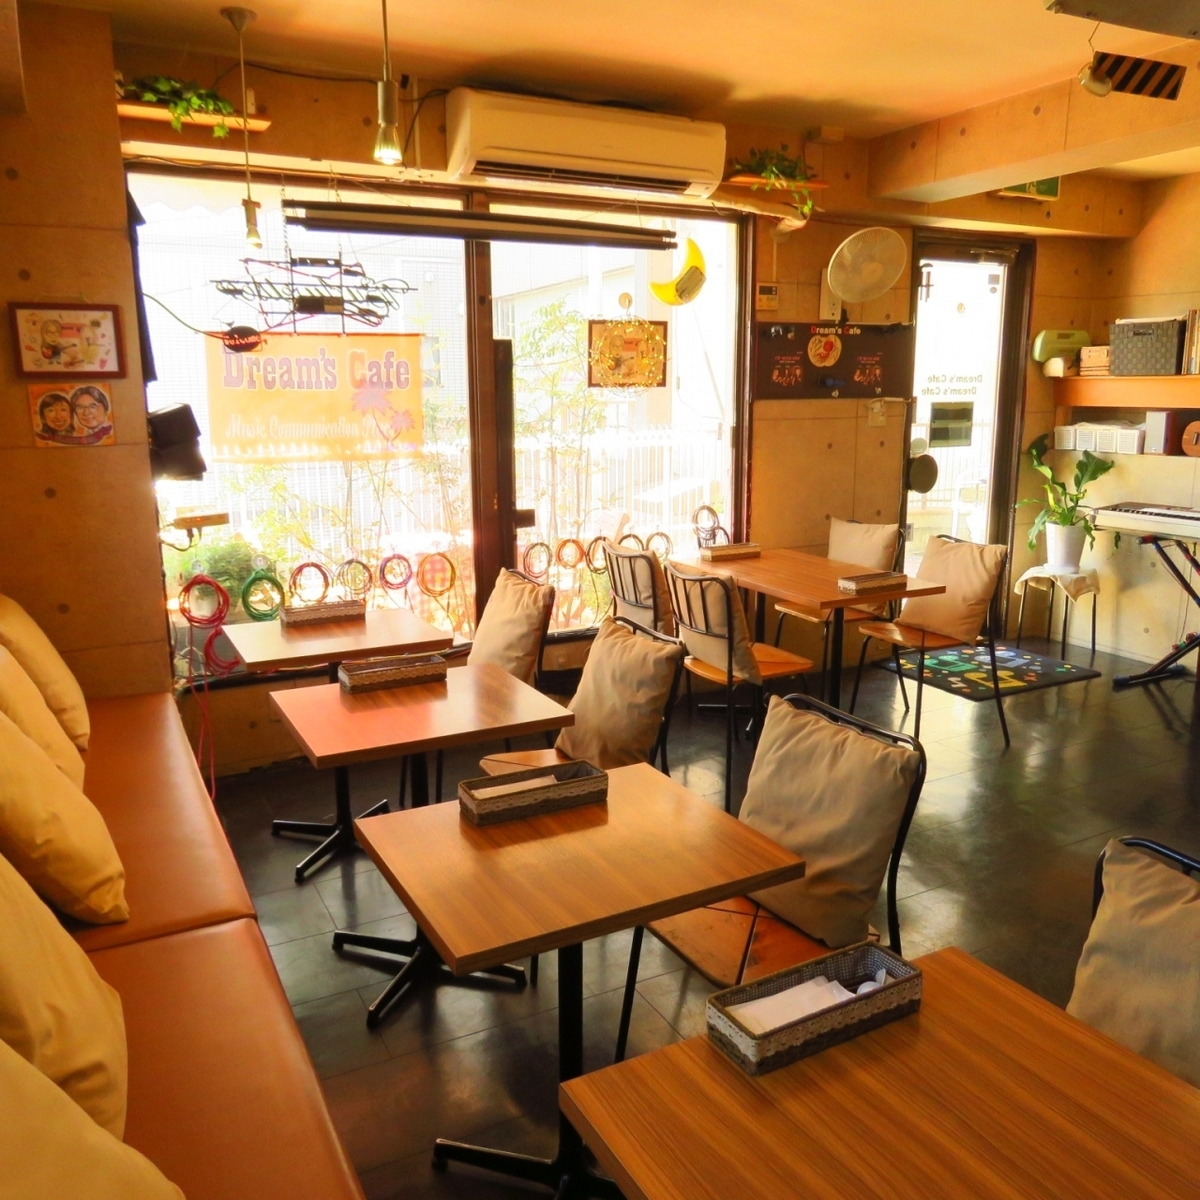 We have seven tables for two persons table.The table seat is movable.It is possible to use it for medium size banquets from small group drinking party by combination.